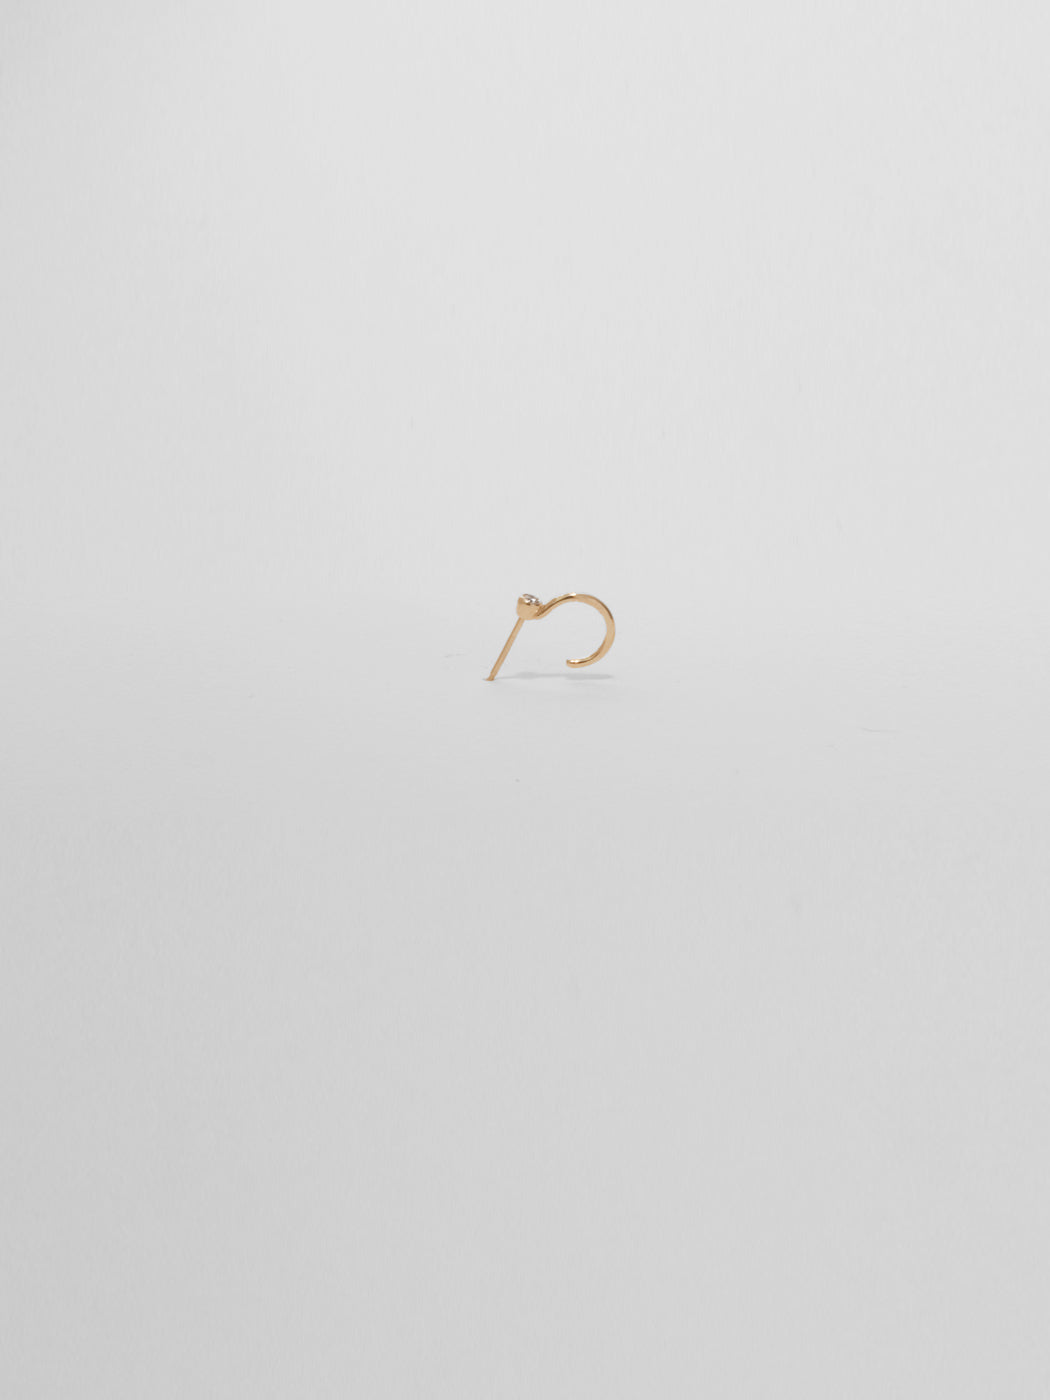 Marion Hoop / Diamond / 14Kt Yellow Gold